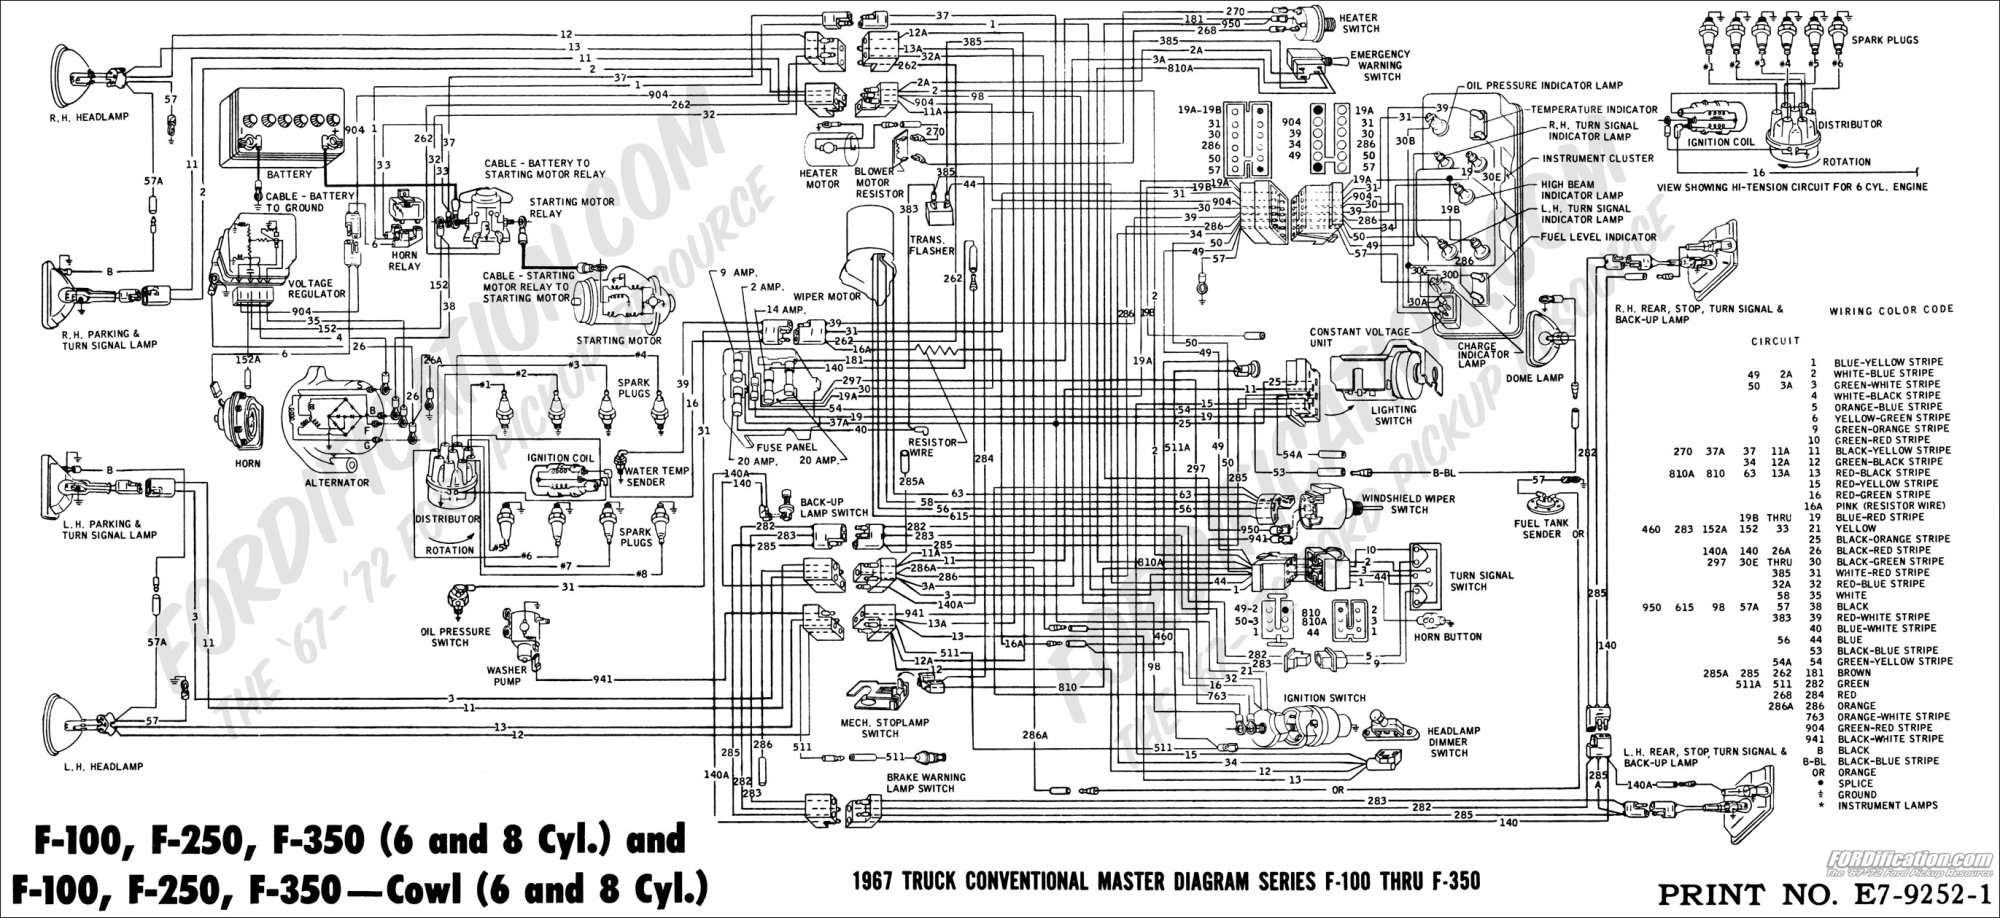 hight resolution of 2000 ford e150 engine diagram wiring diagram for you 2009 f350 fuse box diagram 2007 ford e150 fuse diagram